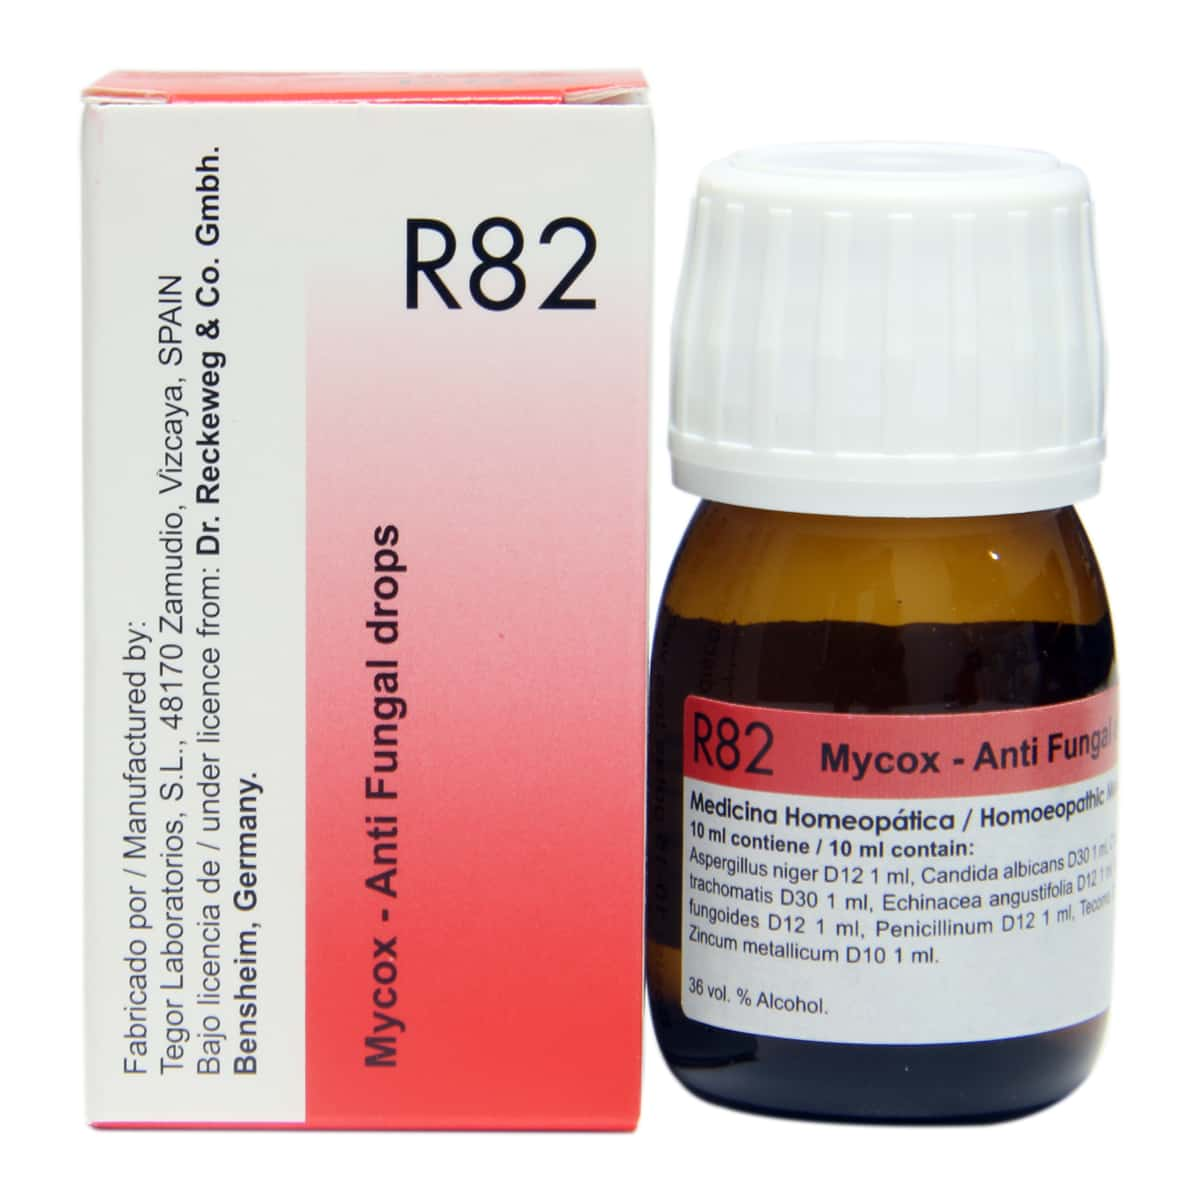 R82-Homeopathicology.com